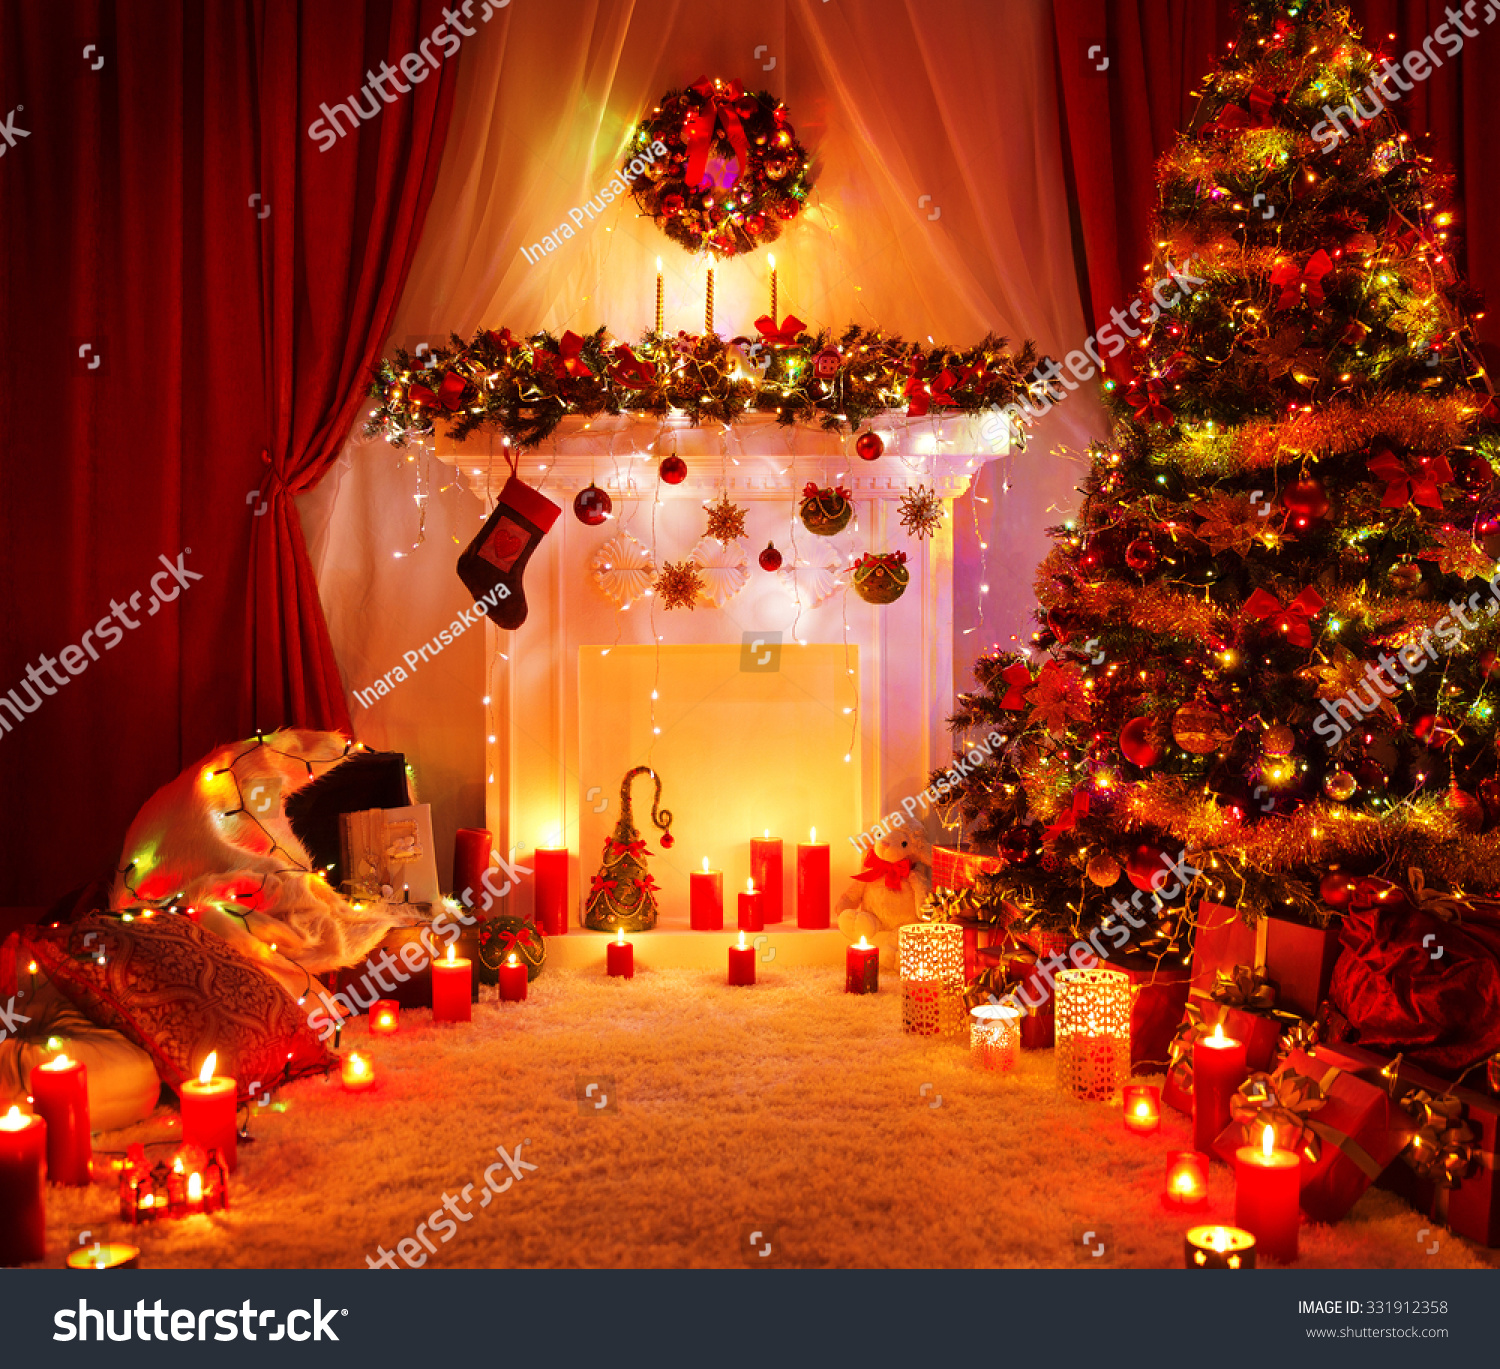 room christmas tree fireplace lights xmas home interior decoration hanging sock and present toys - Hanging Christmas Lights In Room